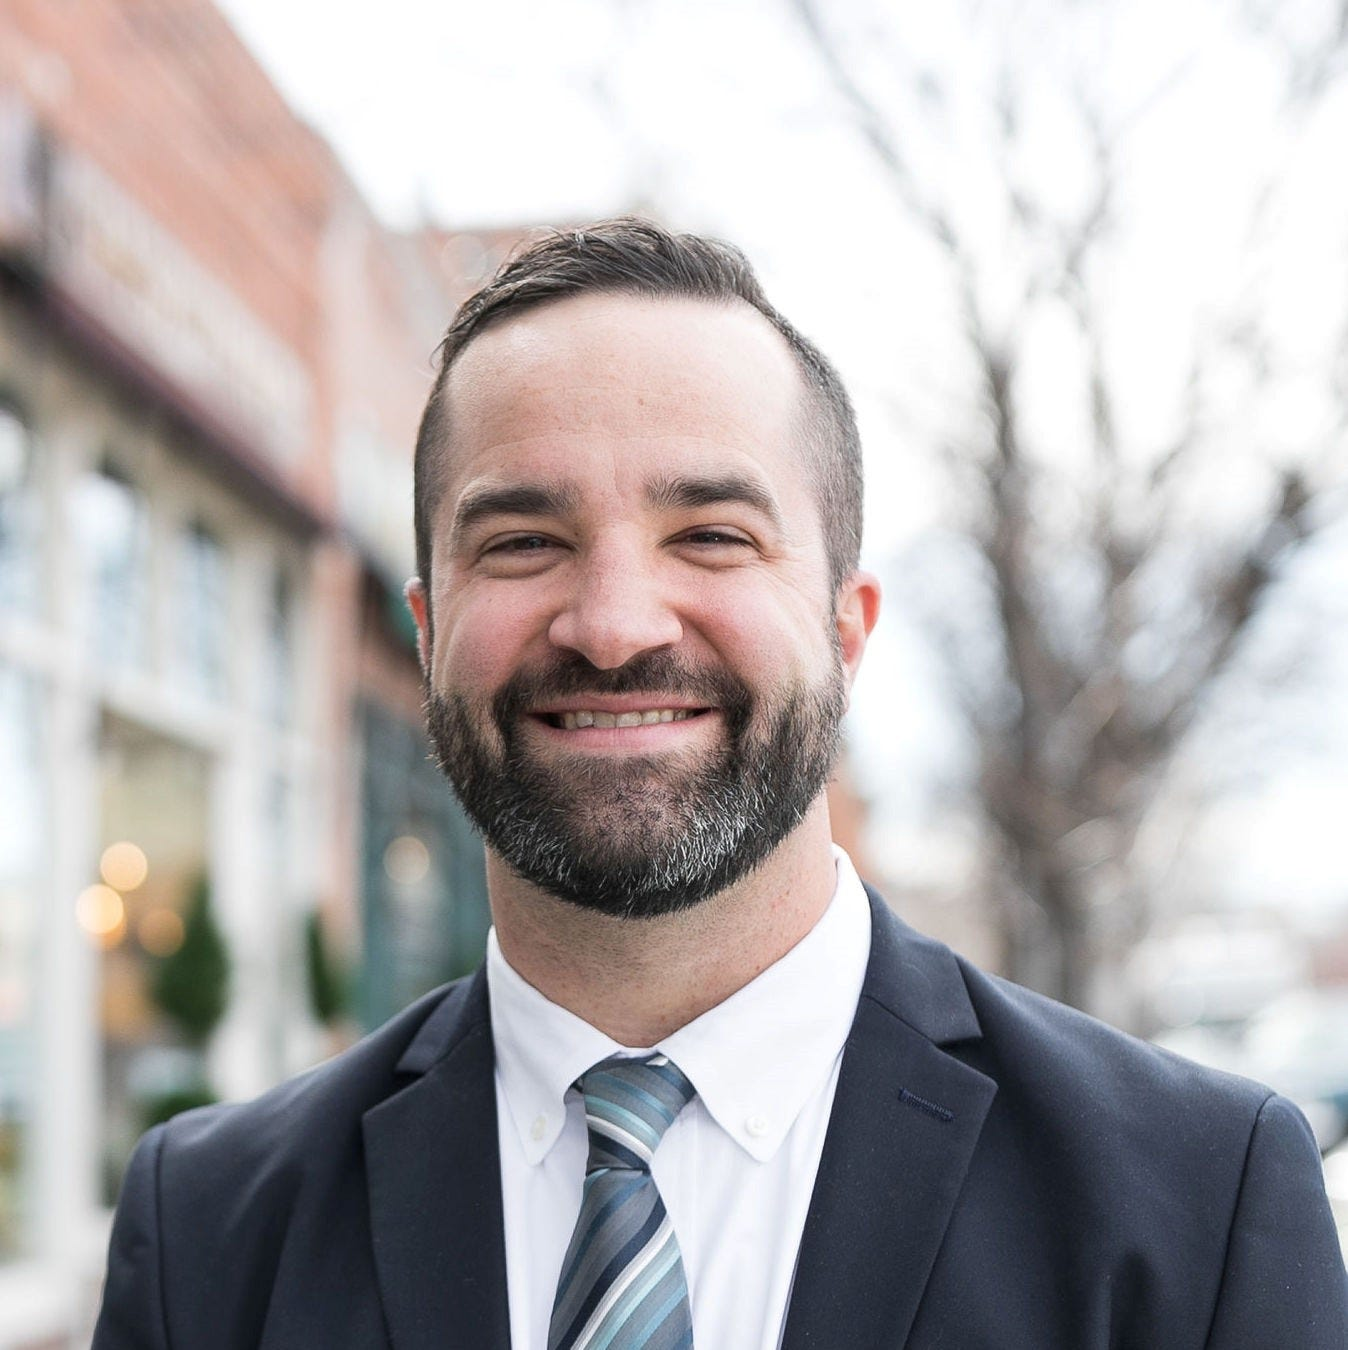 Noah Hutchison announces run for Fort Collins City Council